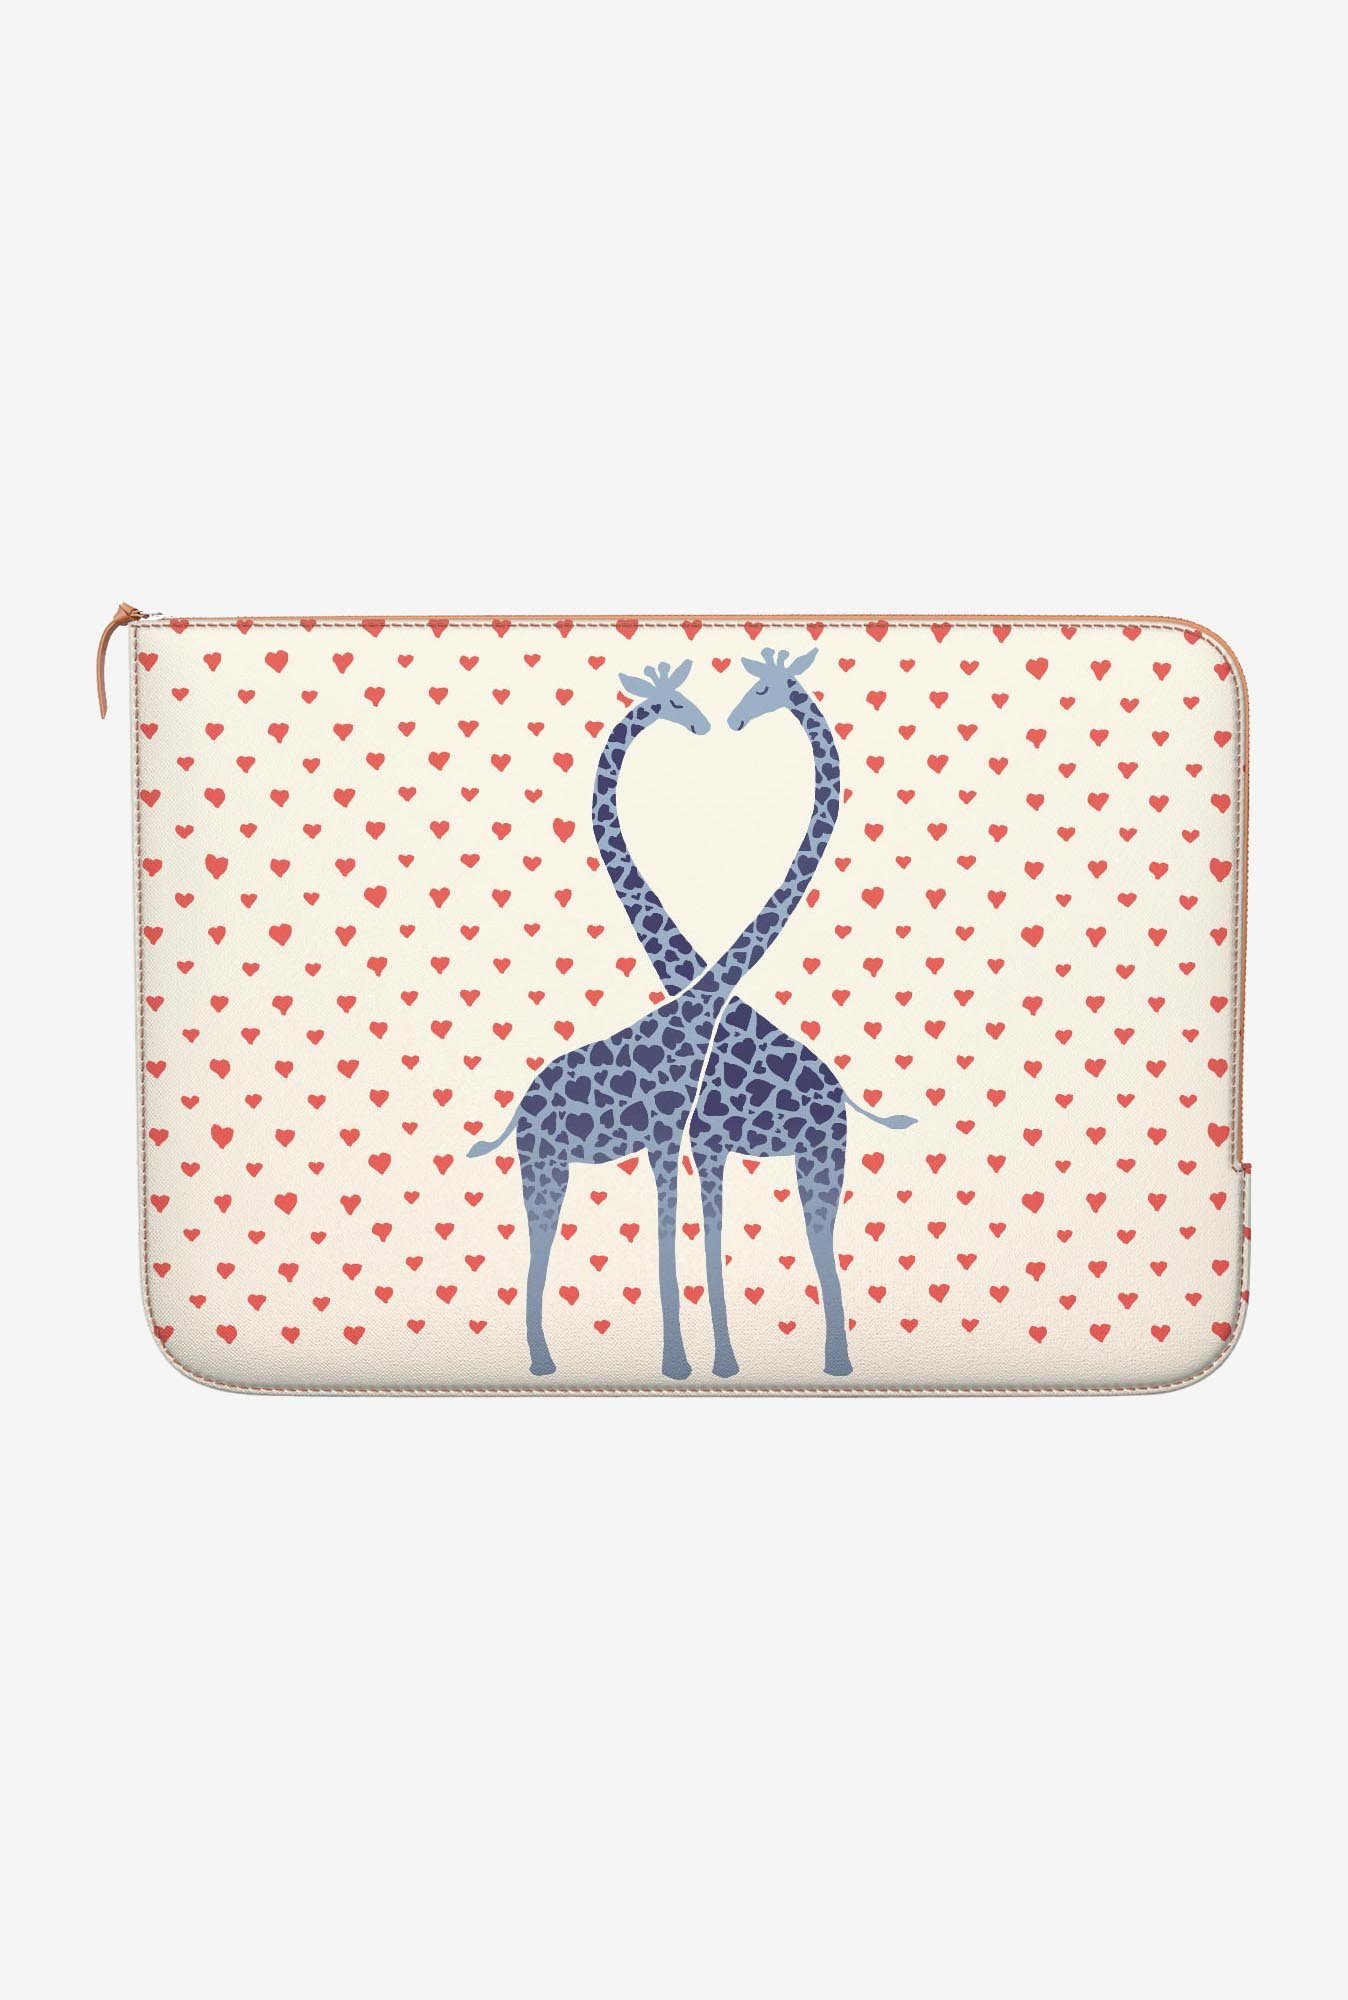 DailyObjects Giraffes Love MacBook Pro 13 Zippered Sleeve